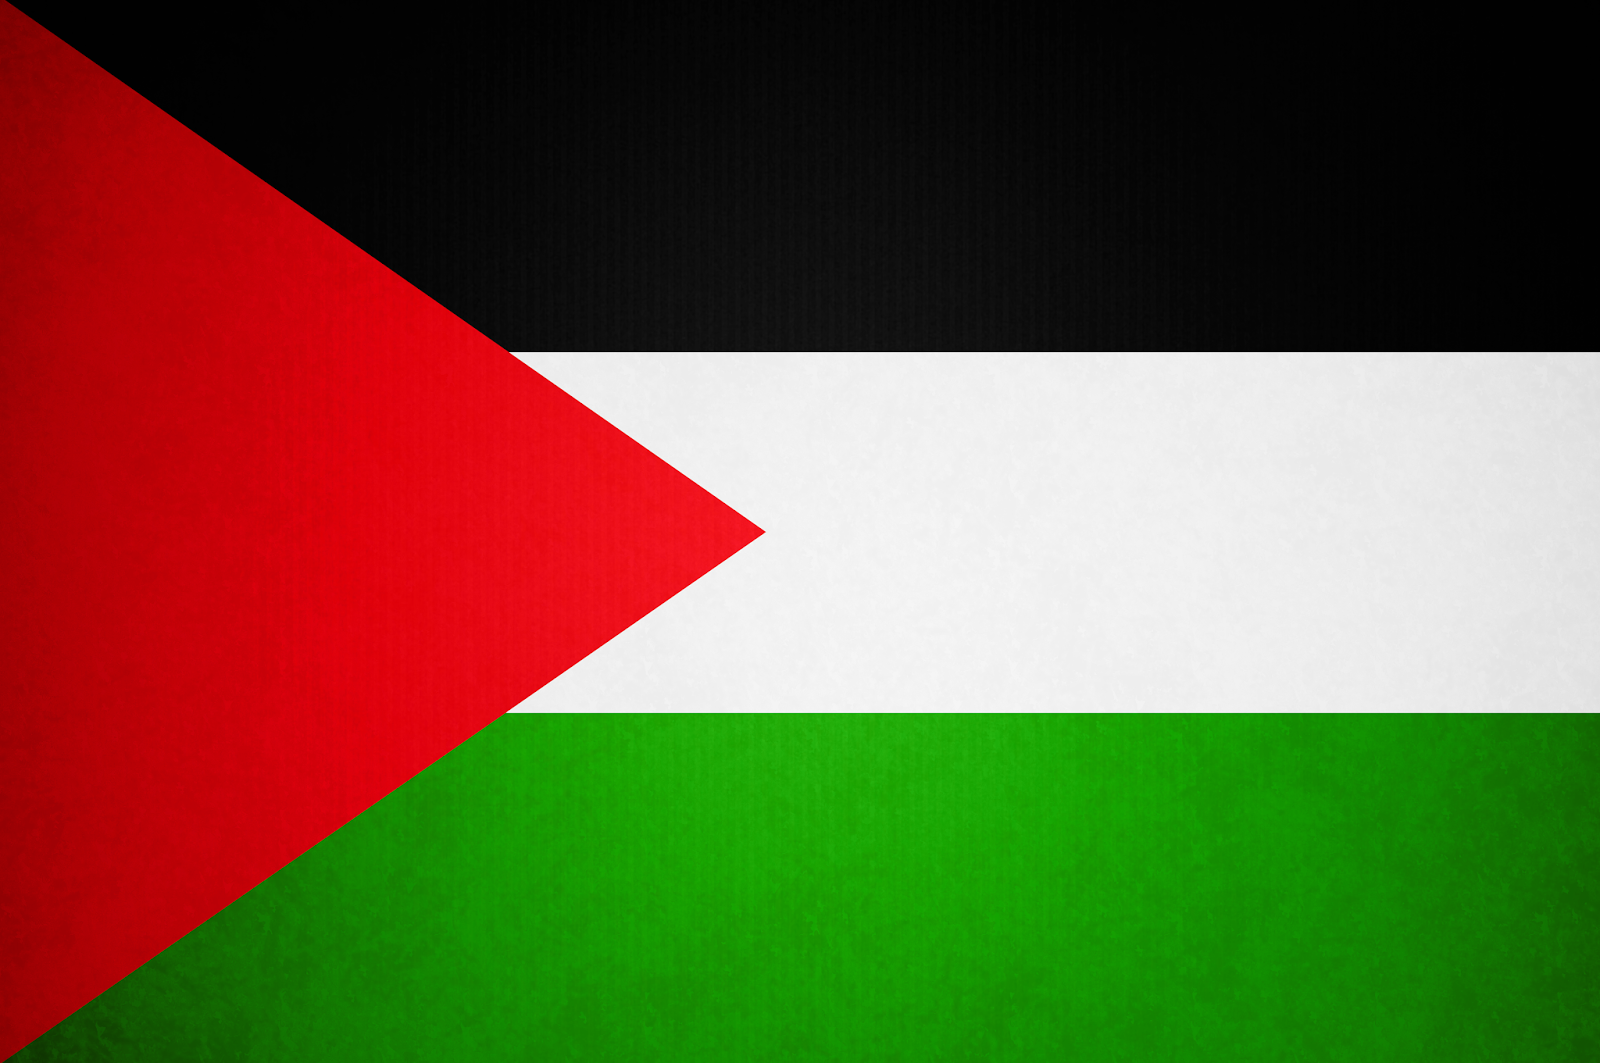 Free Download Palestine Flag Png Images image #38253